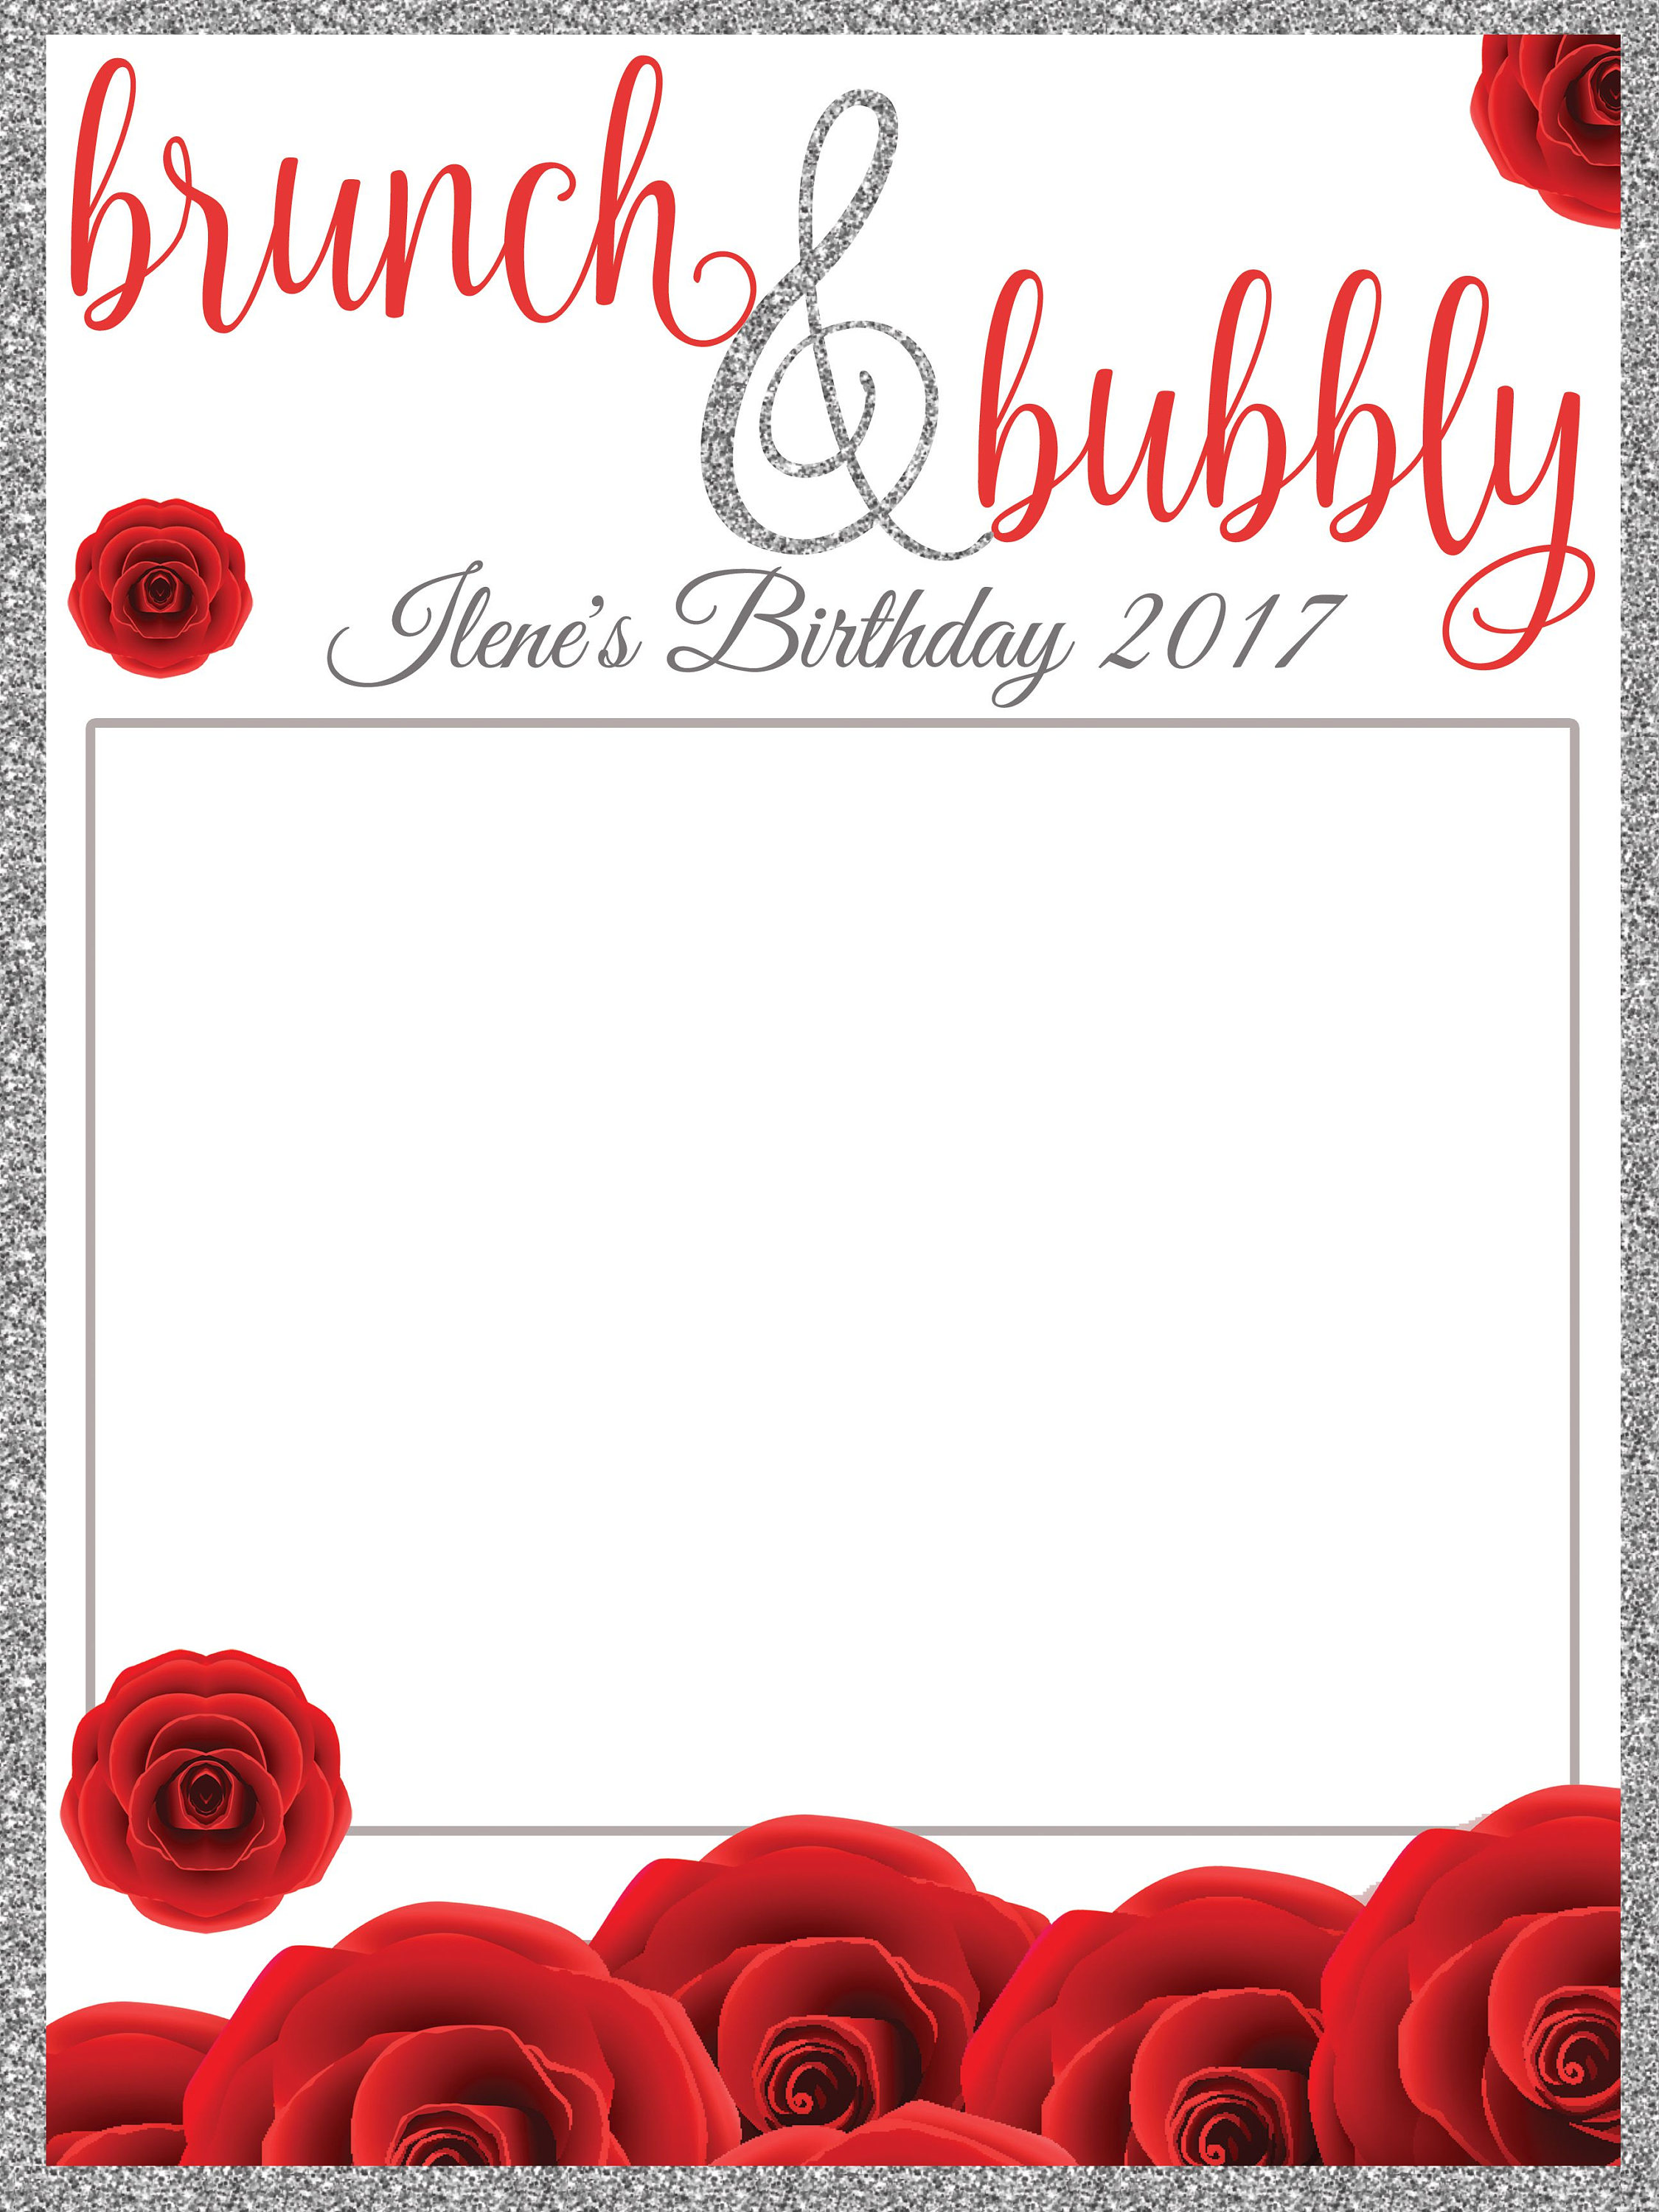 Large Personalized Brunch and bubbly Birthday photo booth prop frame ...